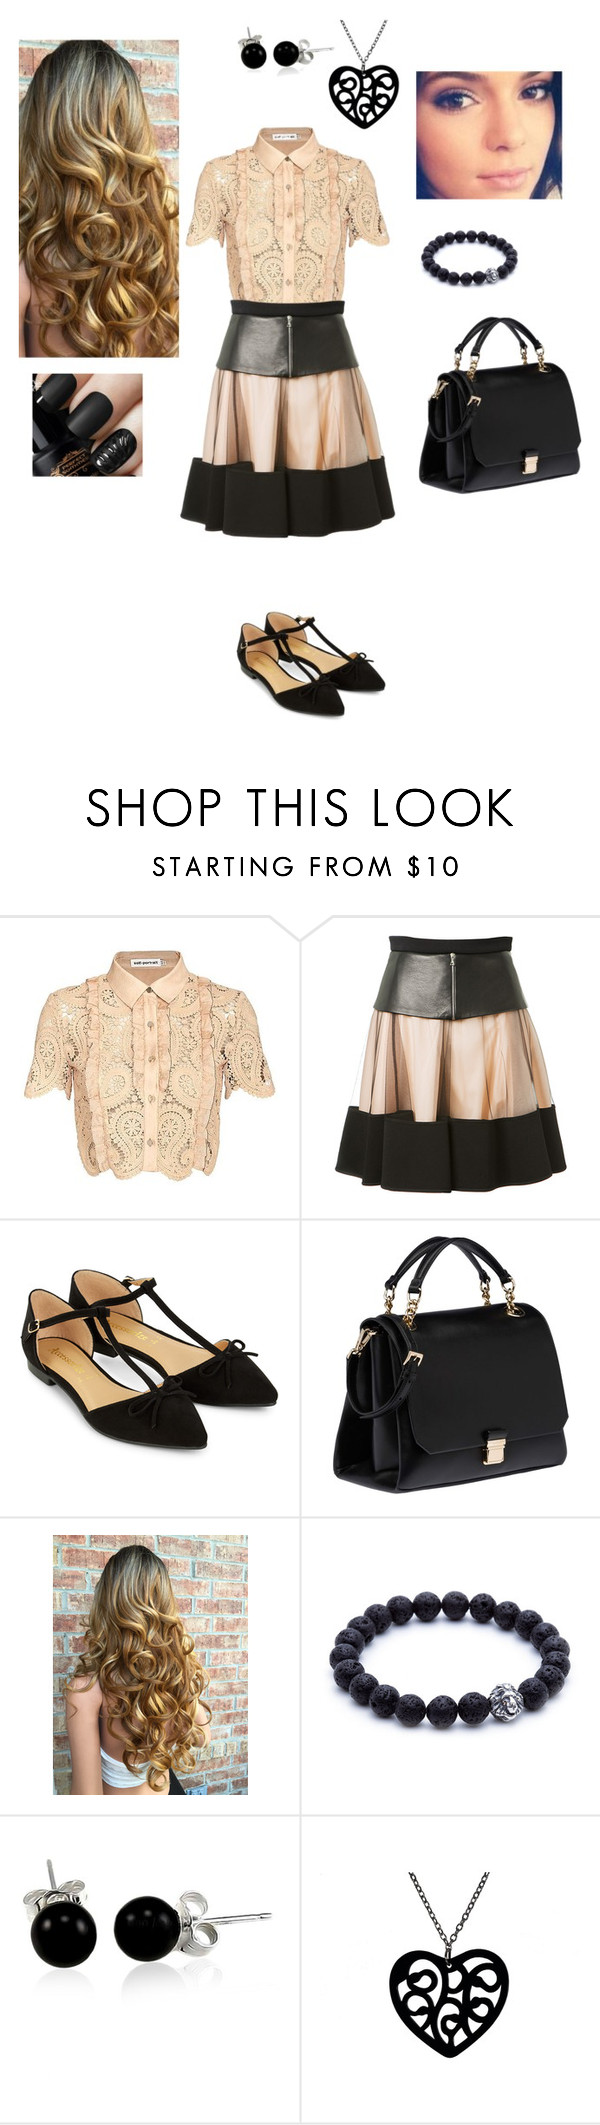 """""""Old fashioned"""" by princesshlb ❤ liked on Polyvore featuring self-portrait, David Koma, Accessorize, Miu Miu and Bling Jewelry"""